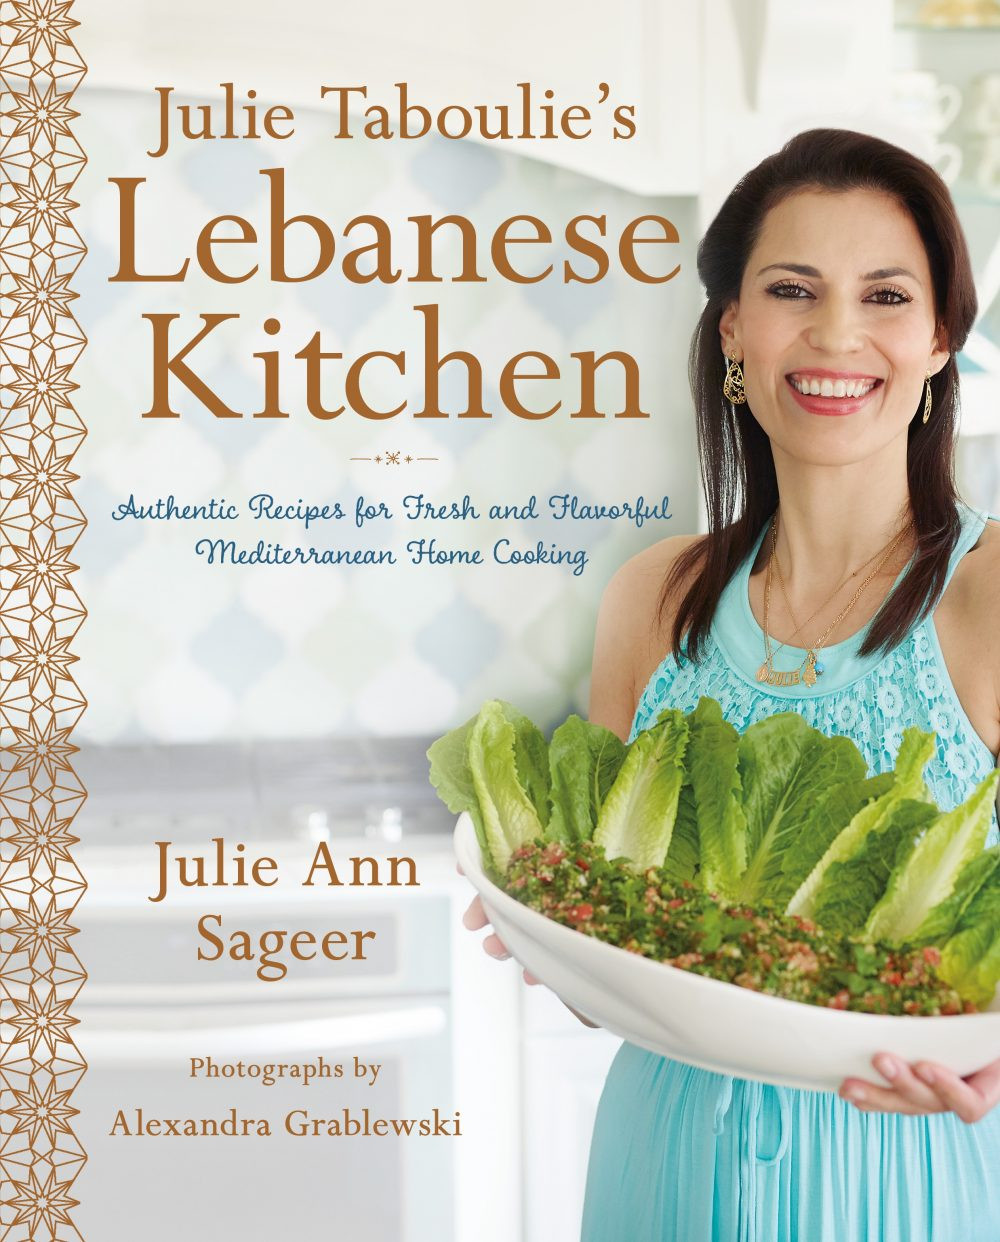 Julie Taboulie's Lebanese Kitchen Book Cover